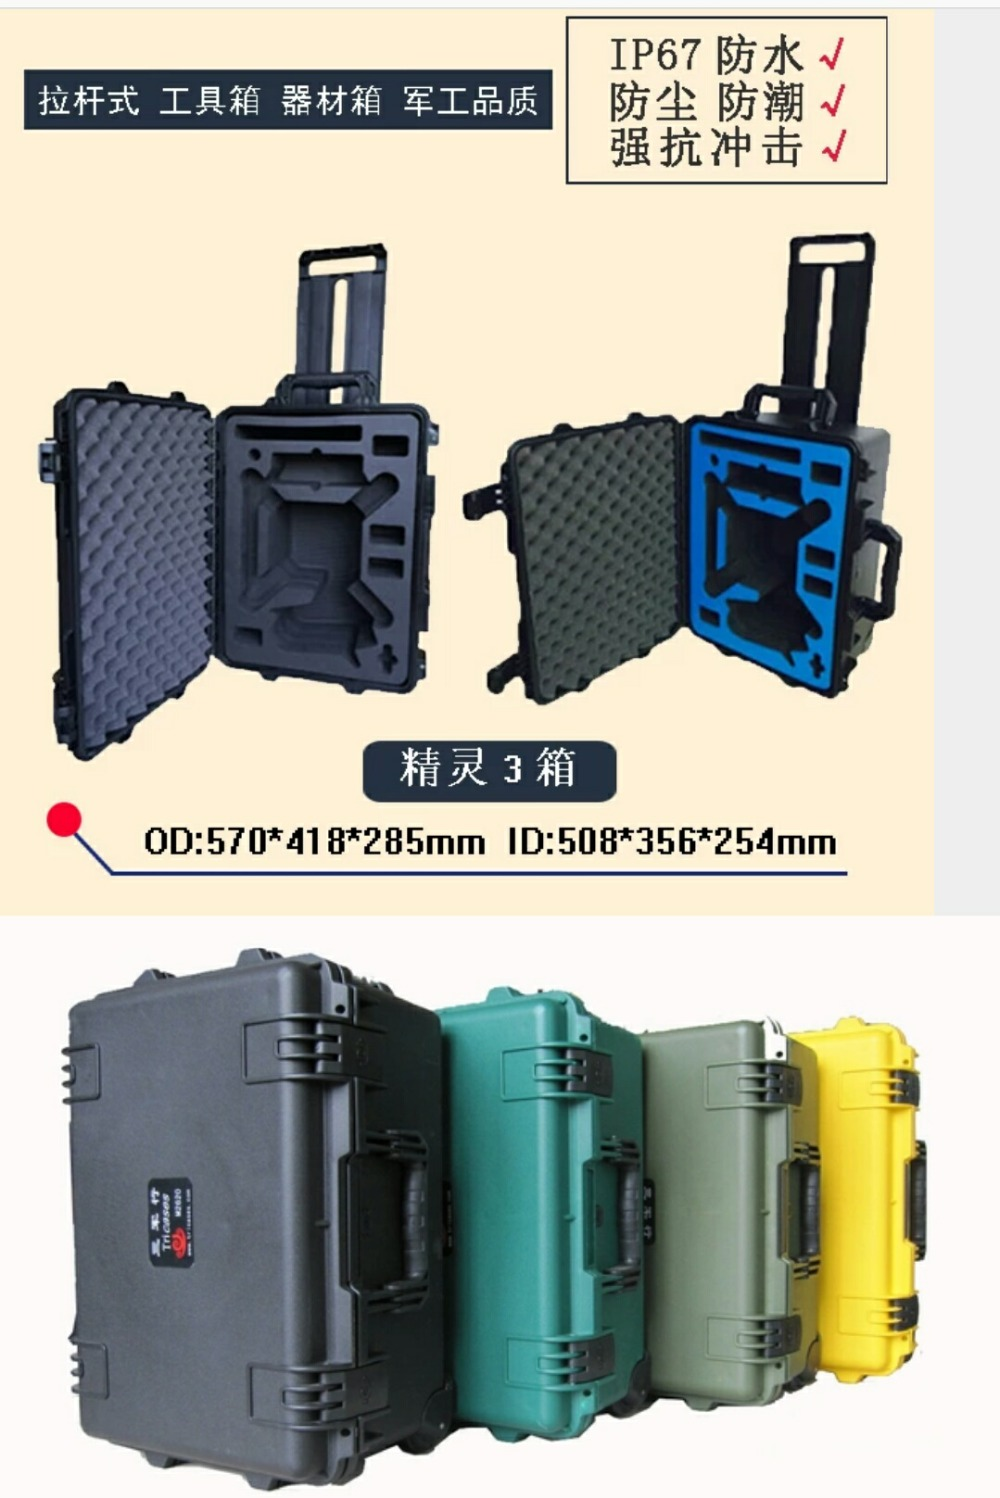 High quality waterproof toolbox tool case trolley case protective box camera case  equipment protection box with wheels and foam tool case gun suitcase box long toolkit equipment box shockproof equipment protection carrying case waterproof with pre cut foam